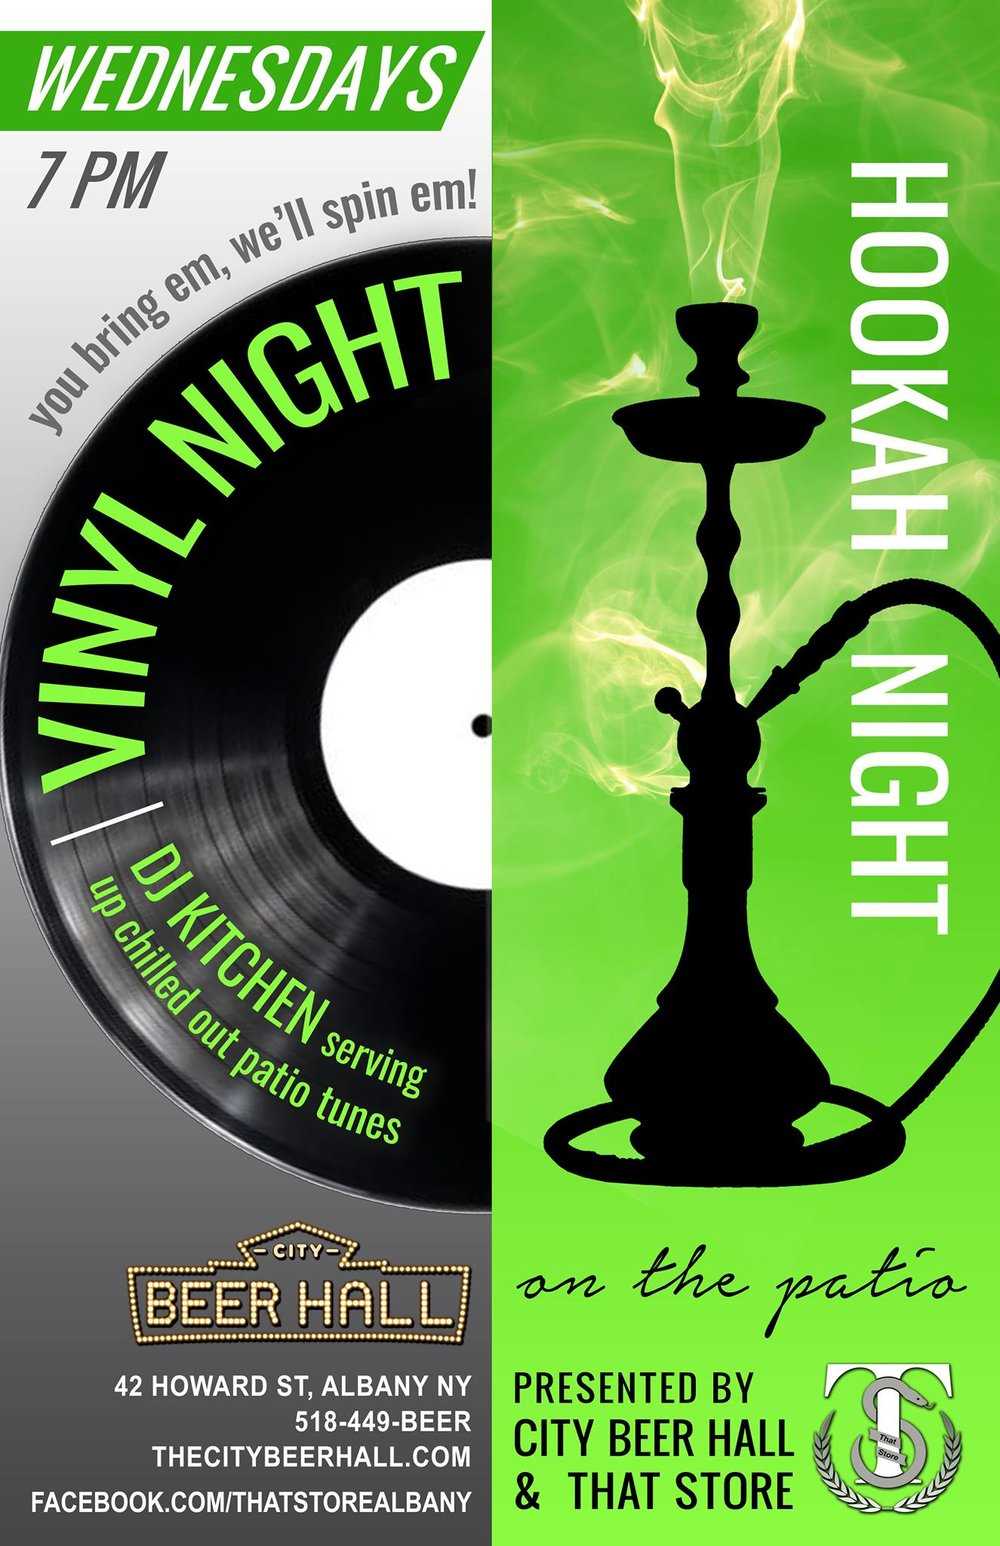 - Wednesday, 6/13 is the launch of our summer Hookah Night!Every Wednesday we'll be offering Hookah courtesy of That Store on our beautiful outdoor patio.Wednesday is also our Vinyl Night-- bring your own vinyl's and DJ kitchen will spin 'em for you!Come eat some gastropub fare, drink good beer, smoke some hookah, & listen to chill tunes in our little downtown Albany urban oasis.Weather permitting, please call ahead to confirm if the weather is questionable. Hookah is first come, first serve. Hope to see you all there!